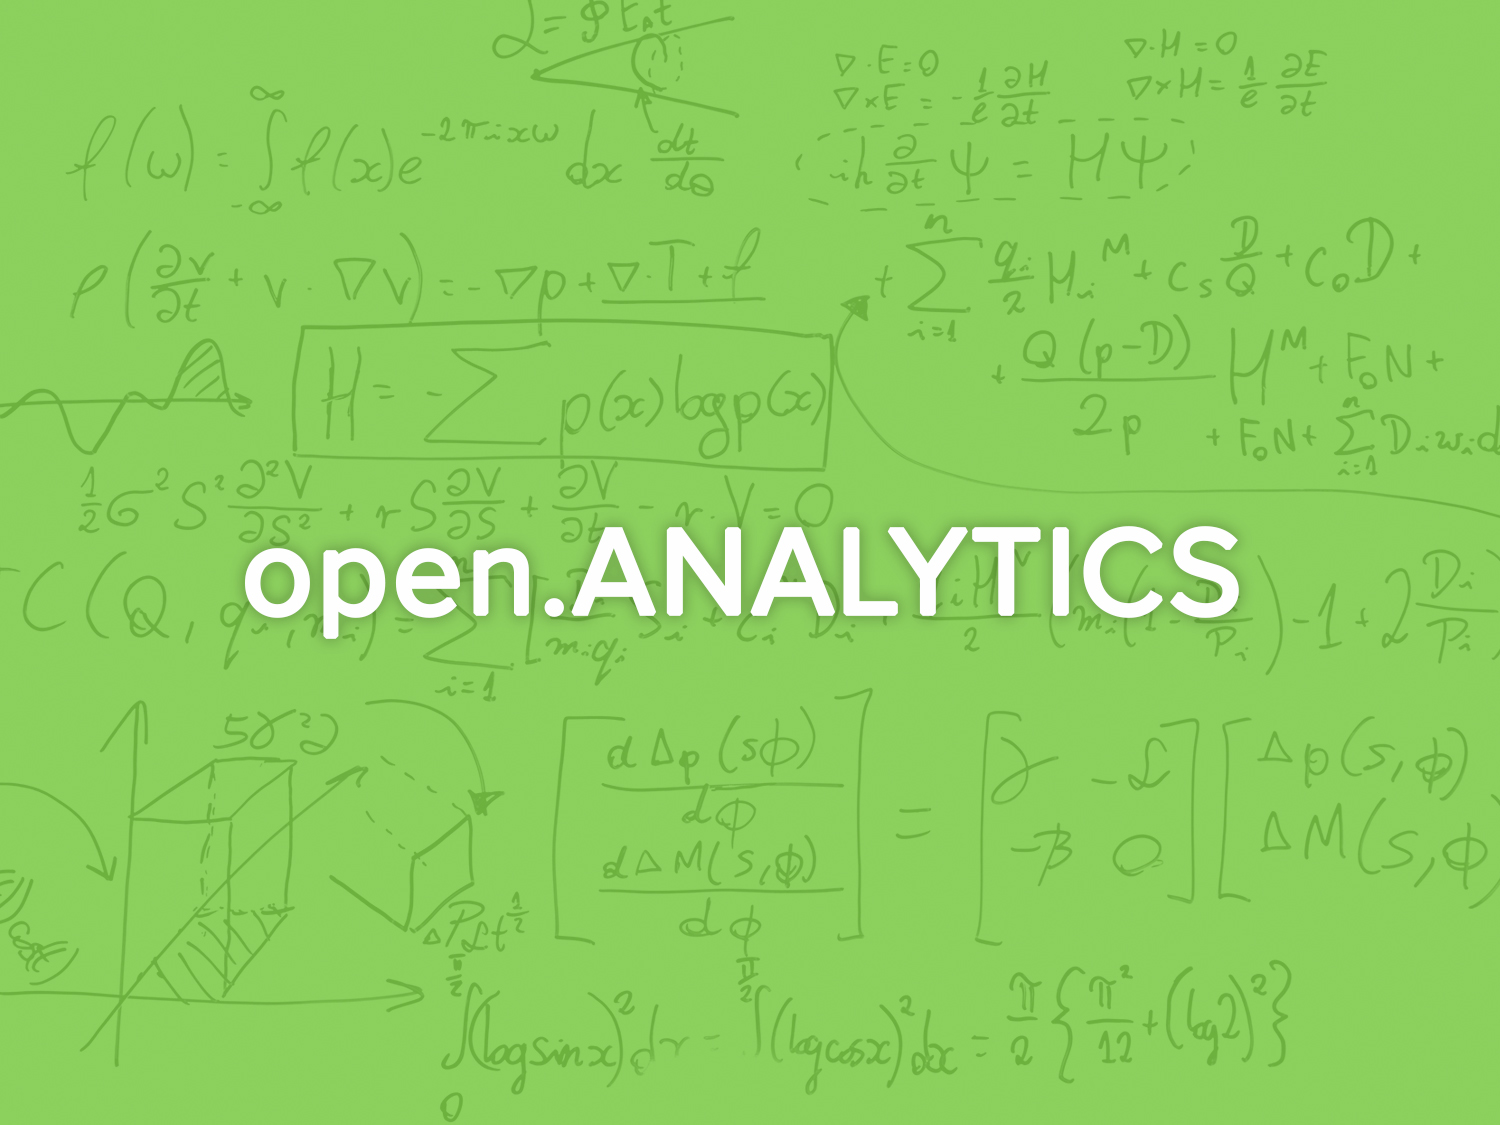 open.ANALYTICS